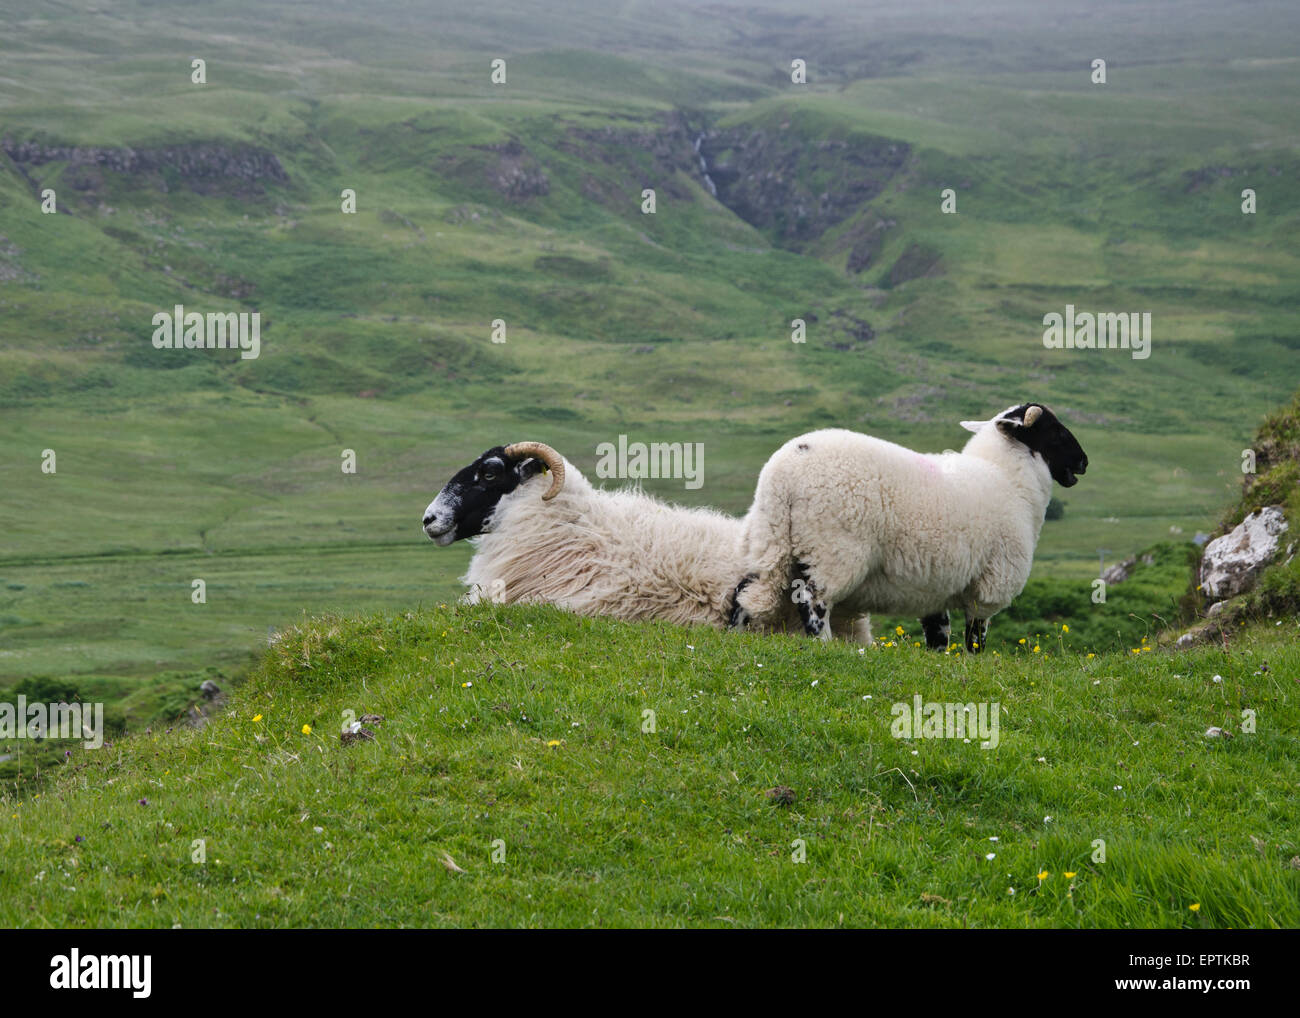 Highland Sheep at the Faerie Glen on the Isle of Skye, Scotland. - Stock Image